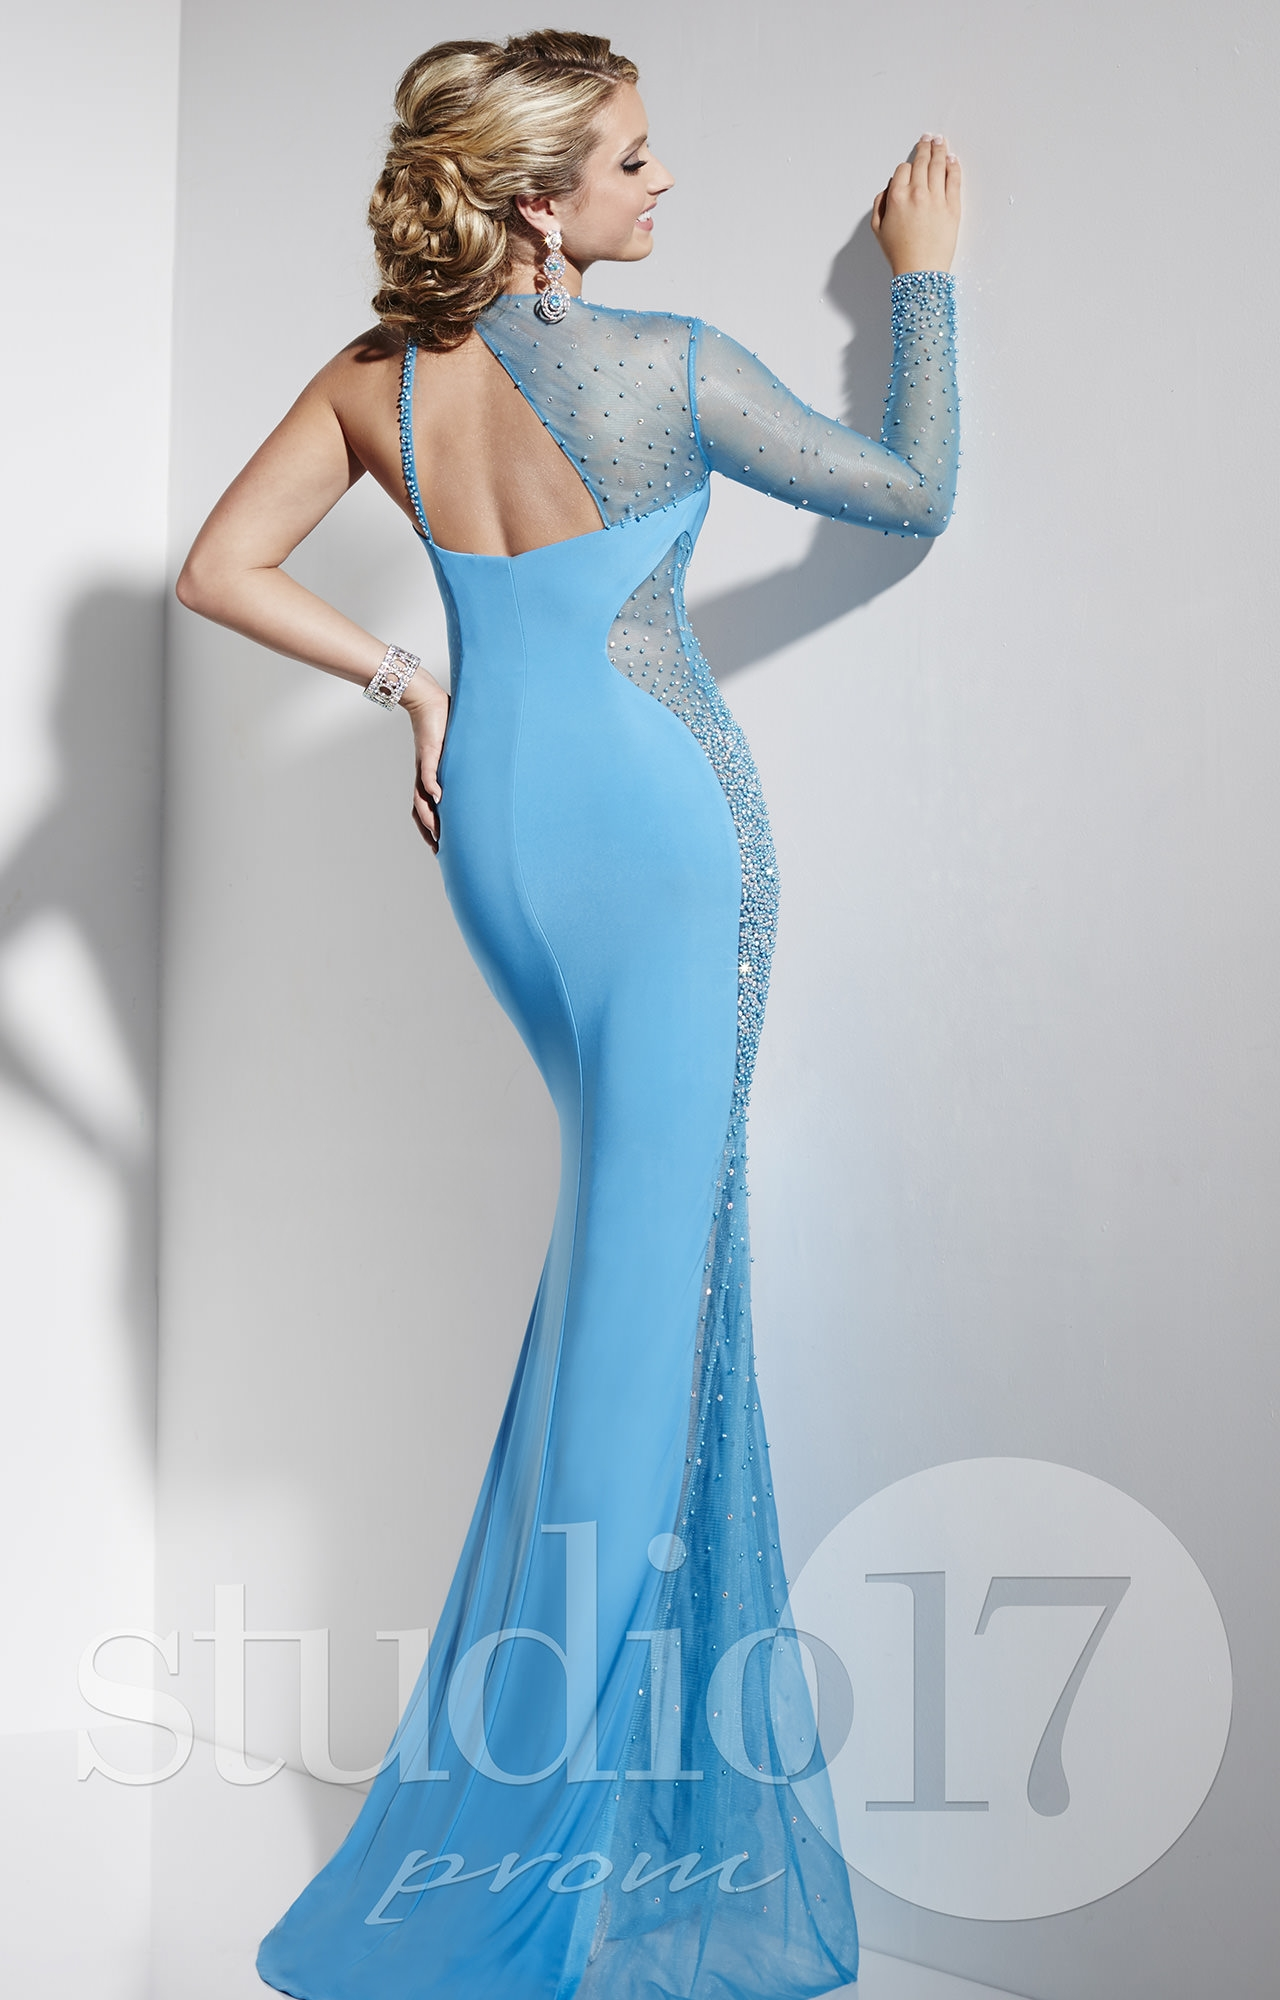 Studio 17 12582 - Trumpet Skirt One Sleeve Gown Prom Dress